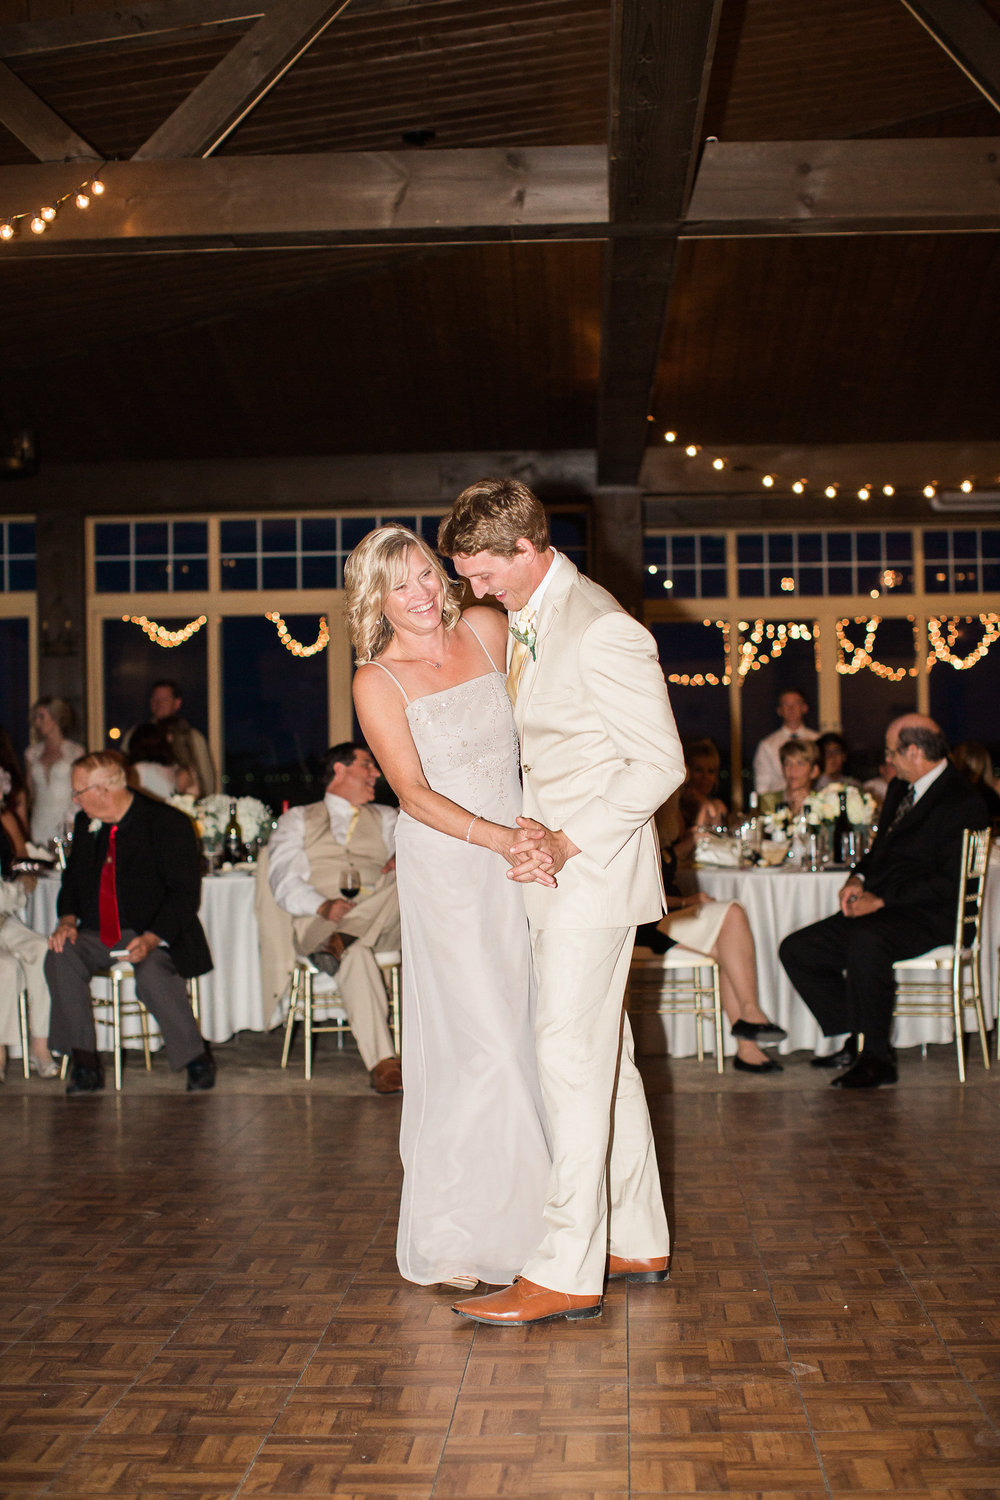 GarneauWeddingReception©ASP-356.jpg